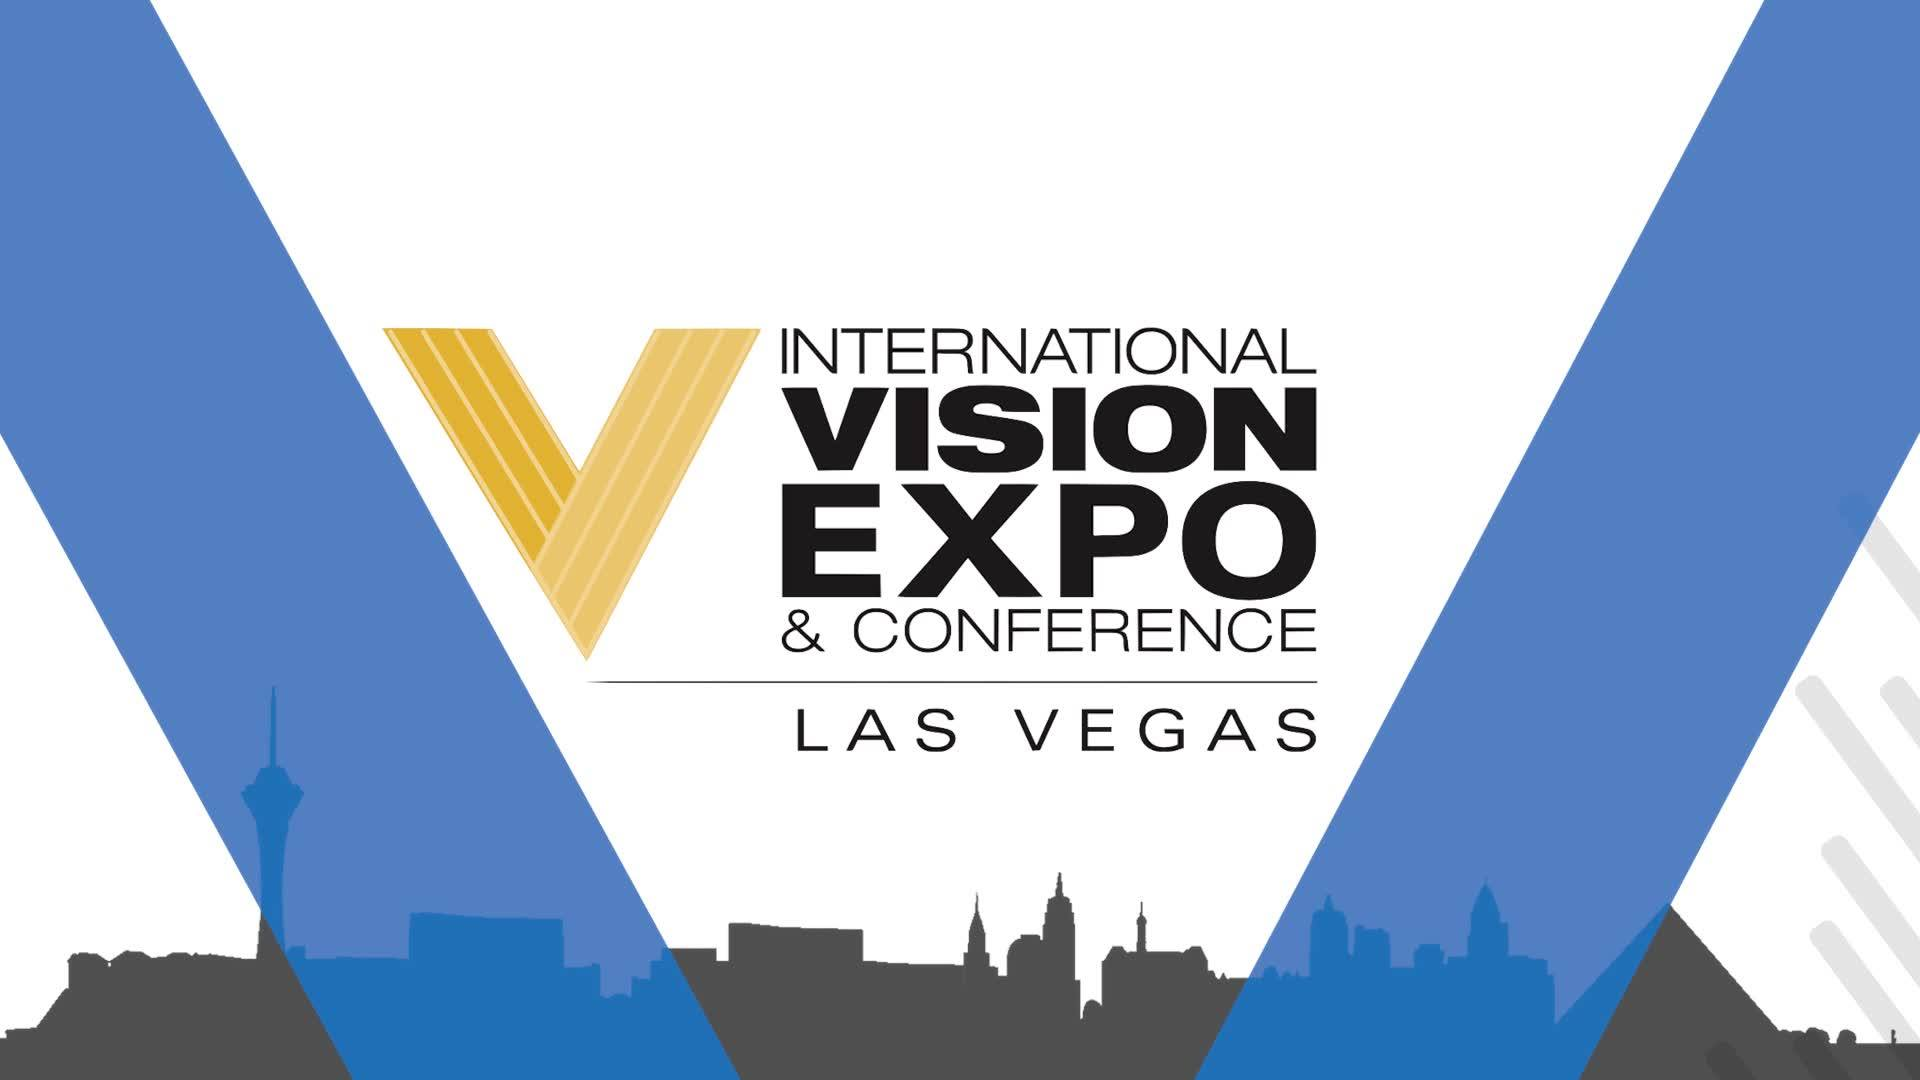 optometry podcast let s talk vision expo west las vegas with dr this year marks matt s 10th anniversary of attending vision expo and being named a visionary made it that much sweeter a celebration